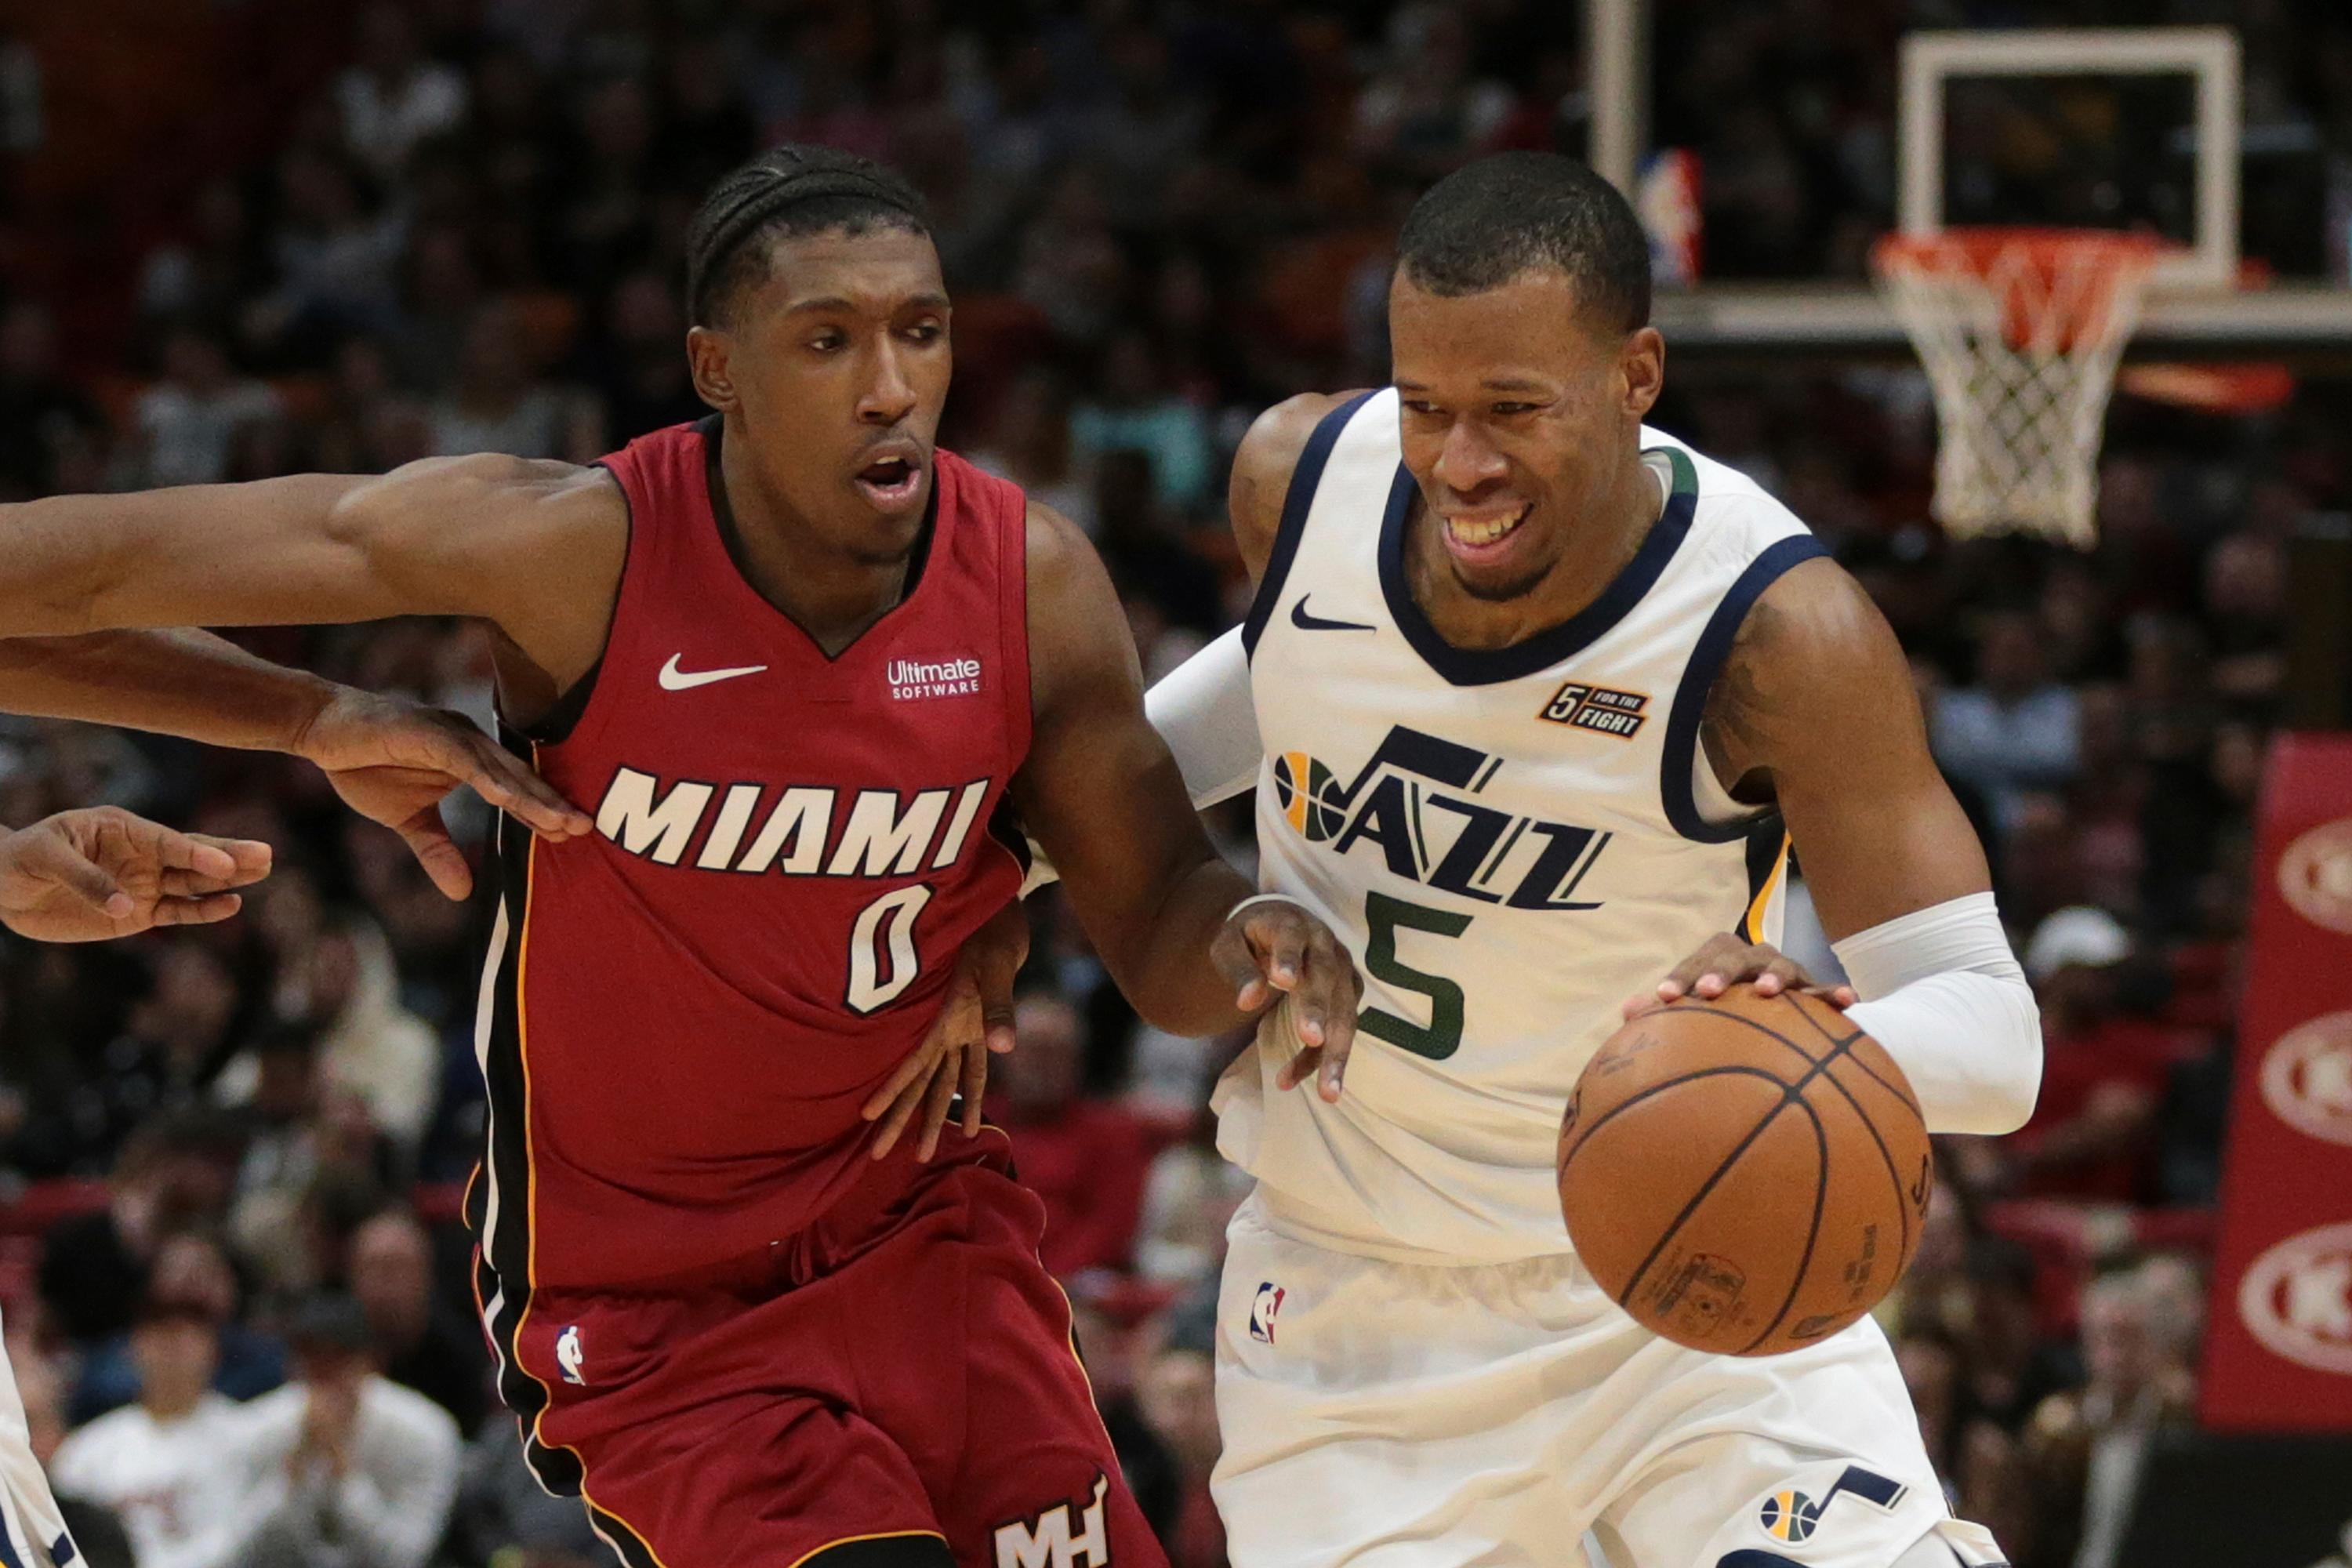 Utah Jazz guard Rodney Hood (5) dribbles against Miami Heat guard Josh Richardson (0) during the second half of an NBA basketball game, Sunday, Jan. 7, 2018, in Miami. (AP Photo/Joel Auerbach)